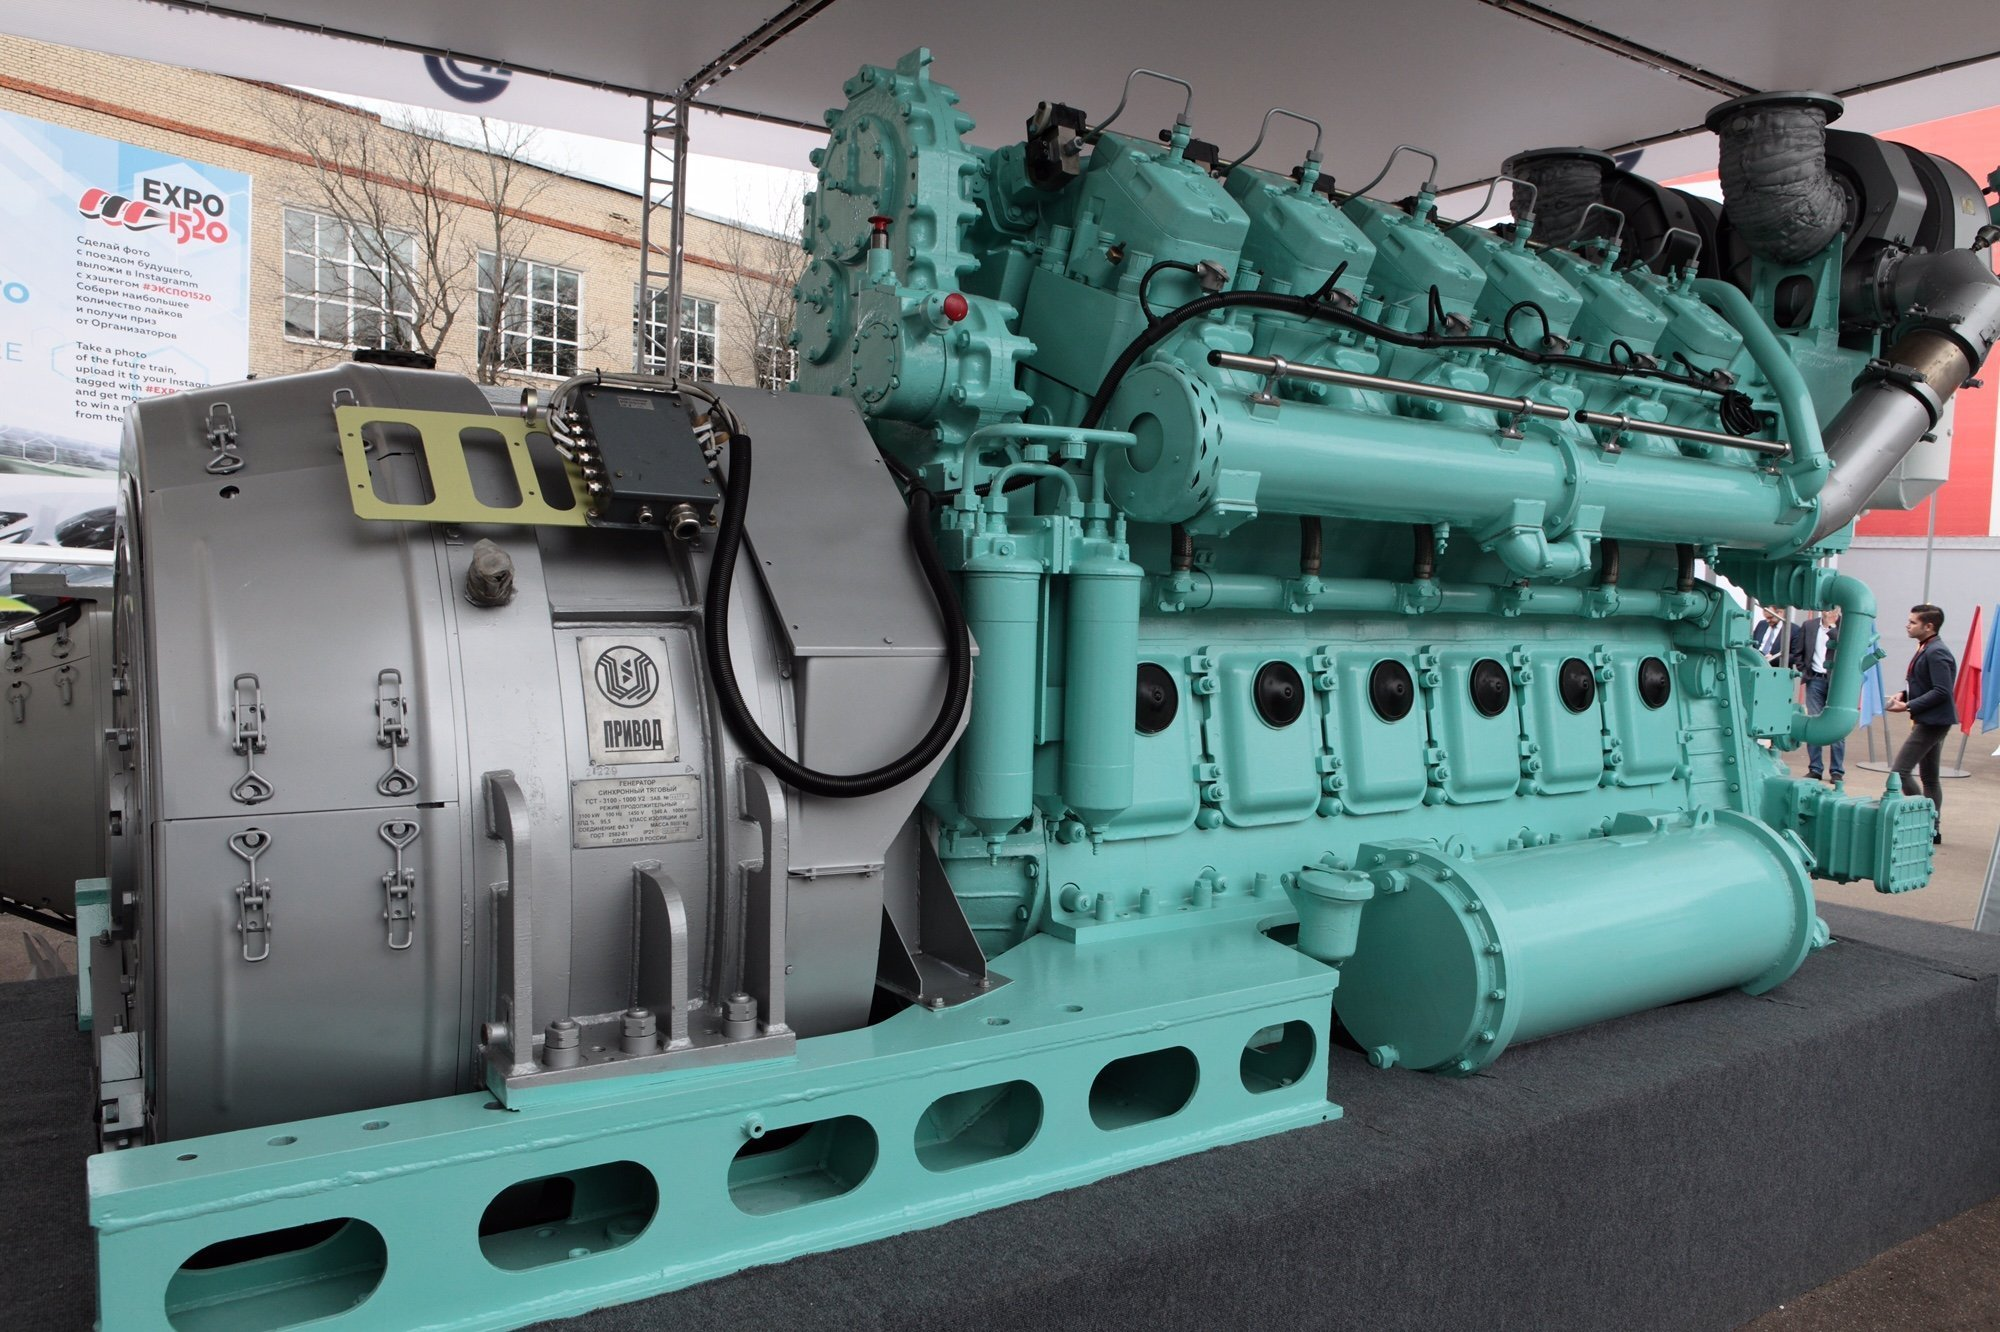 The D300 diesel engine manufactured by Transmashholding